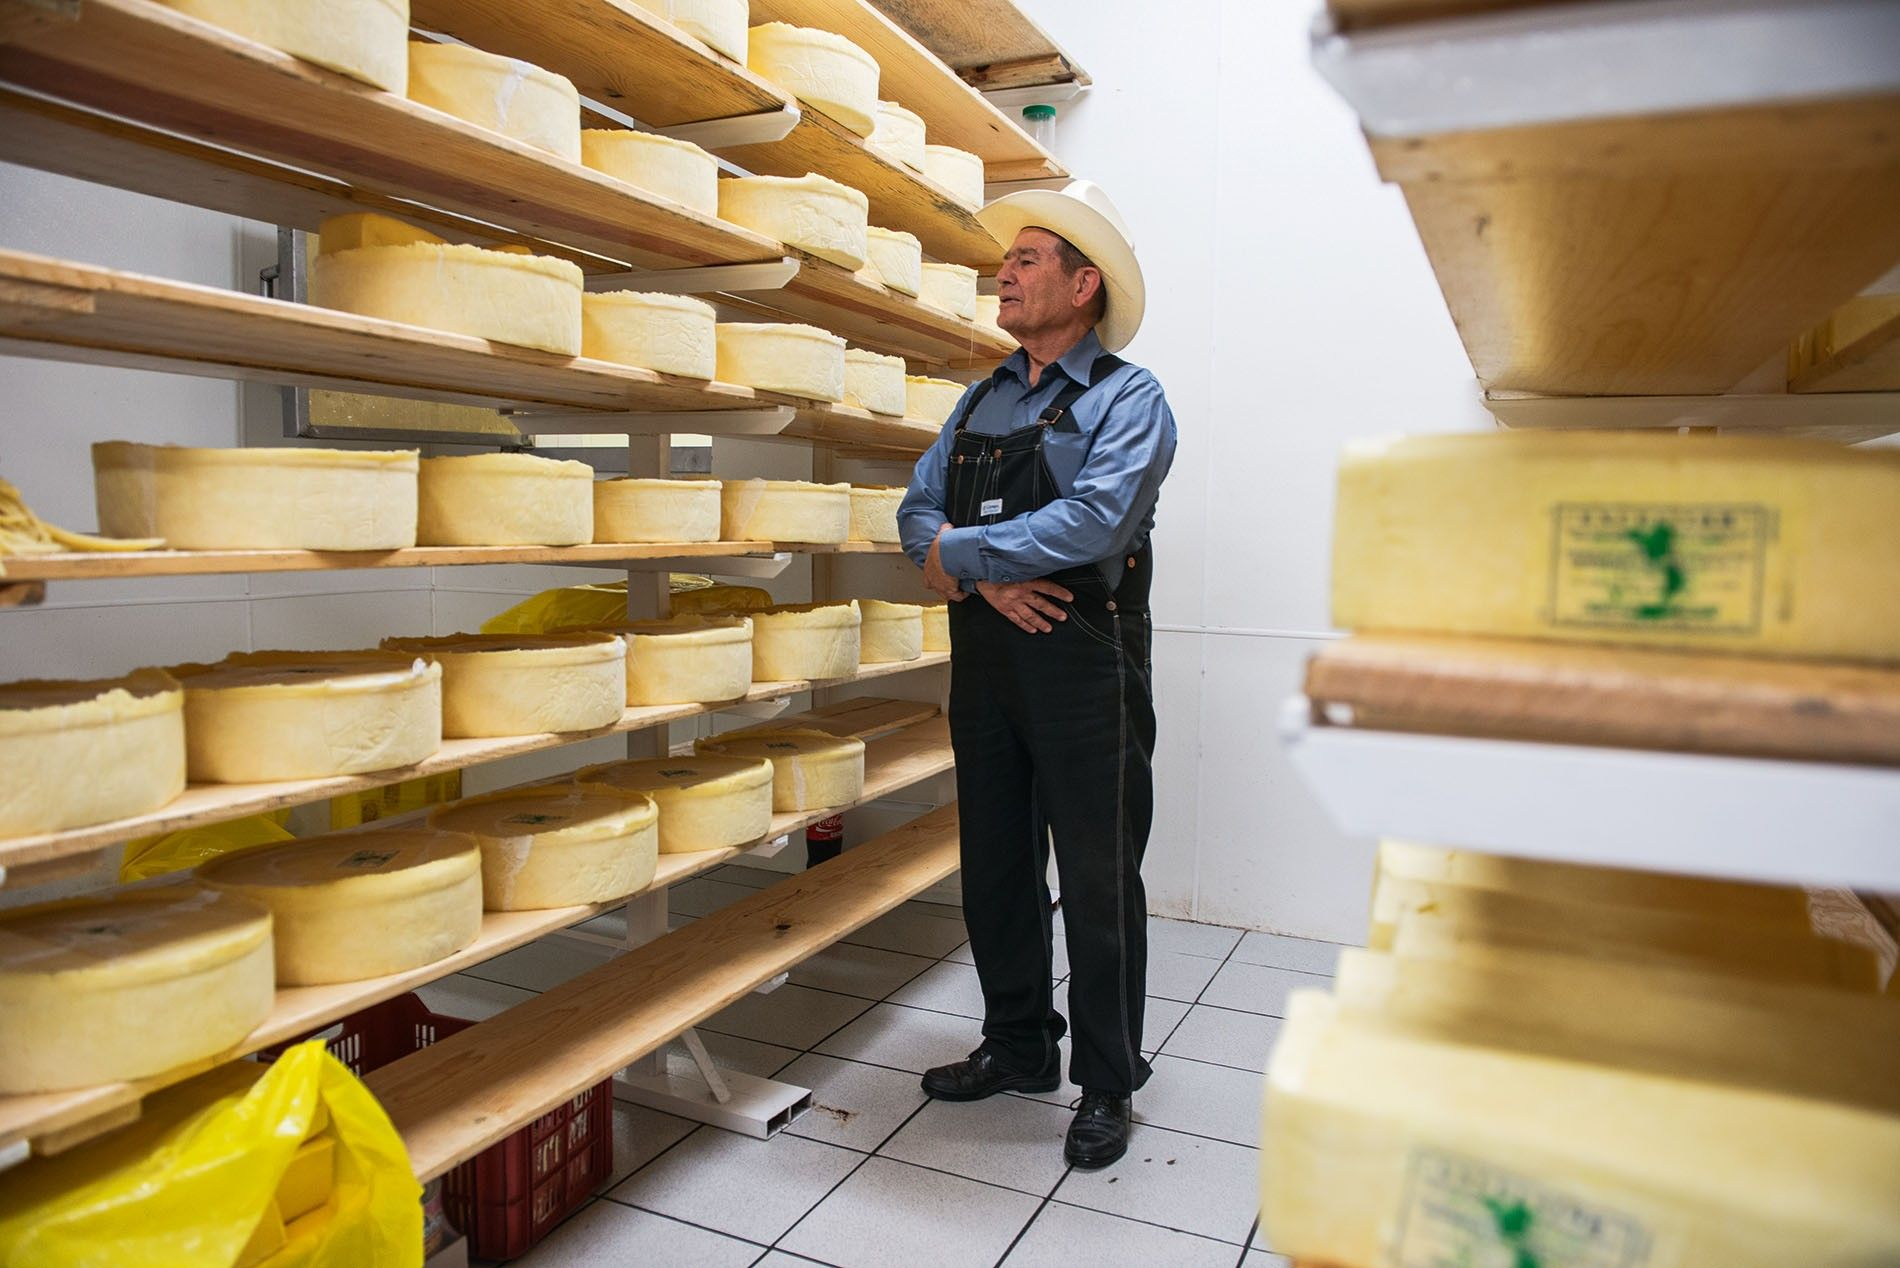 Isaac Enns Wall, manager of Quesería Holanda, inspecting cheeses